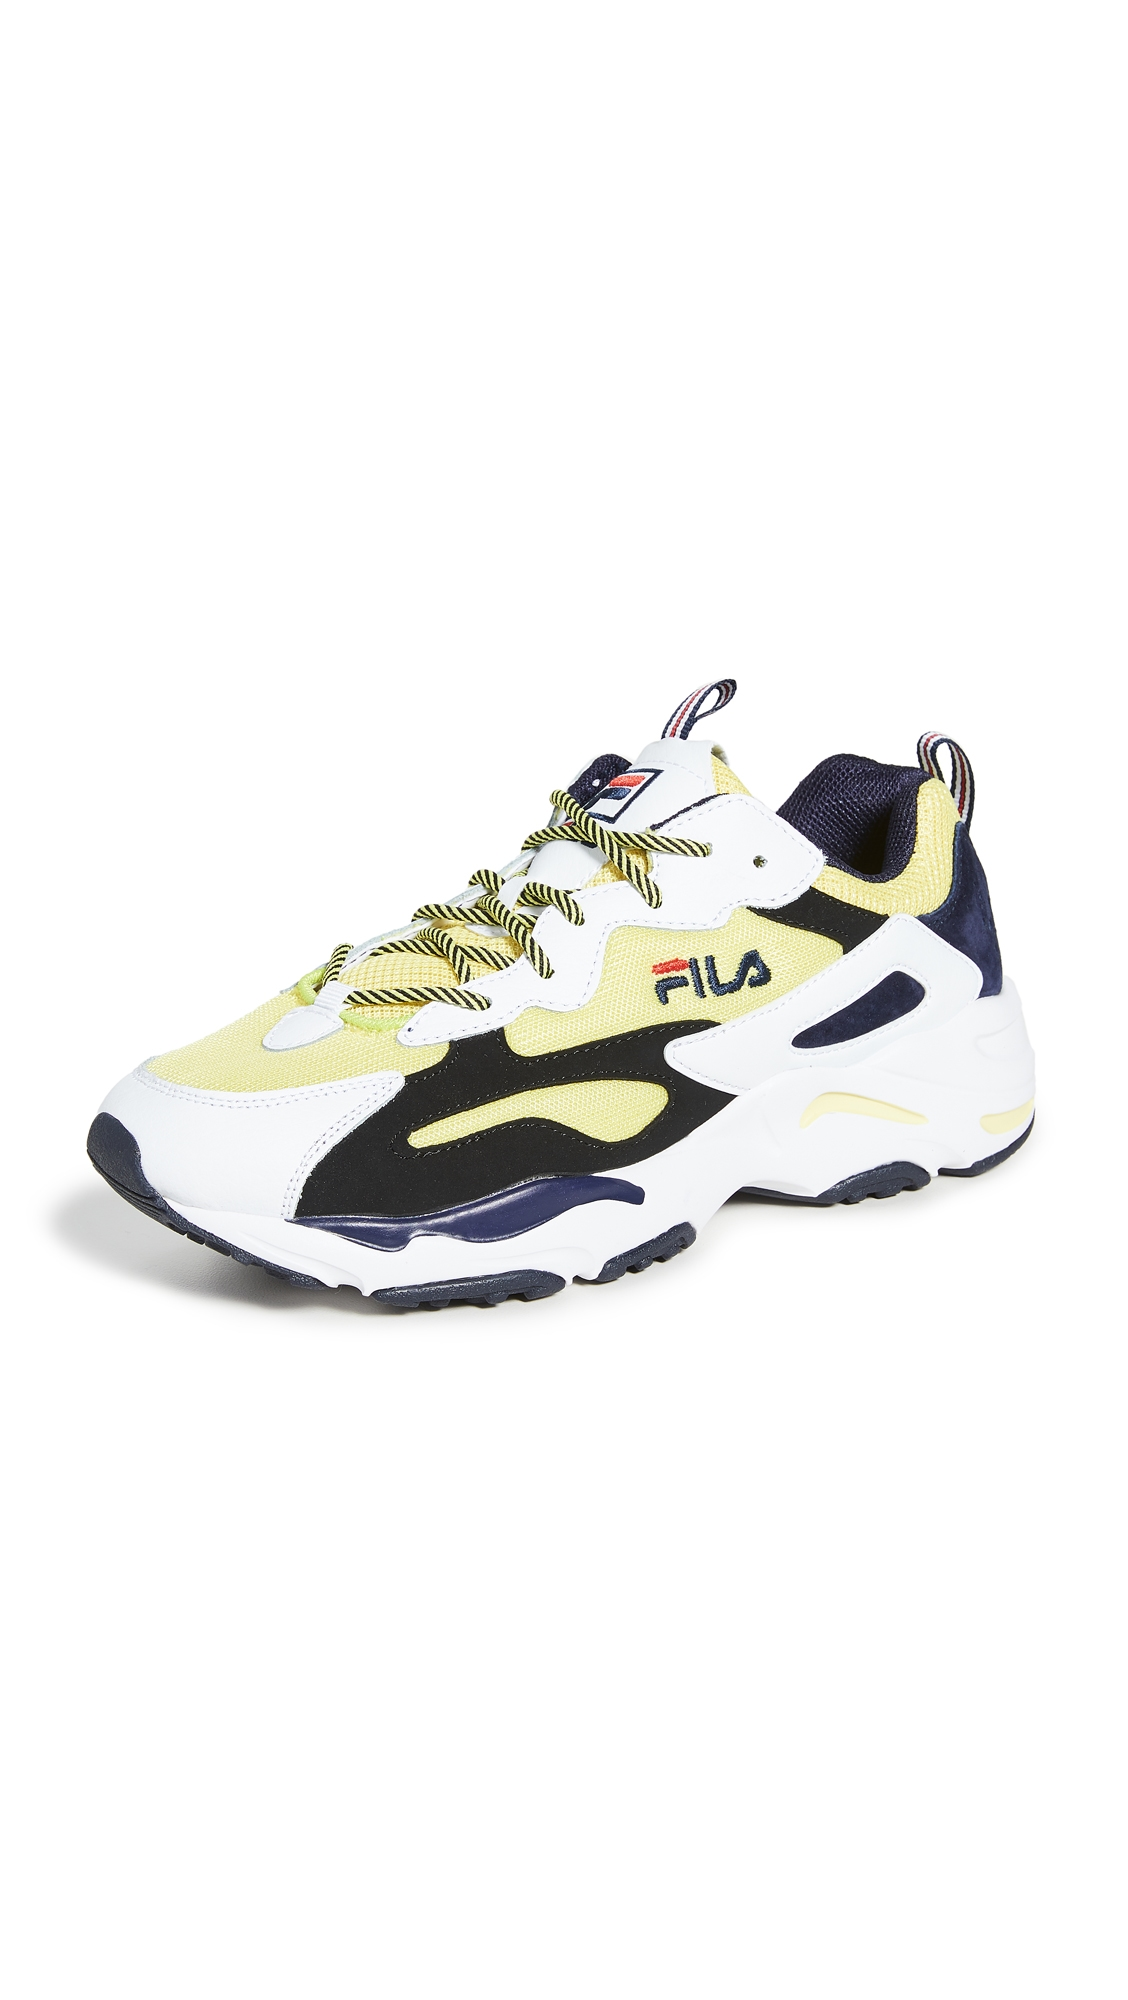 Fila Sneakers RAY TRACER SNEAKERS